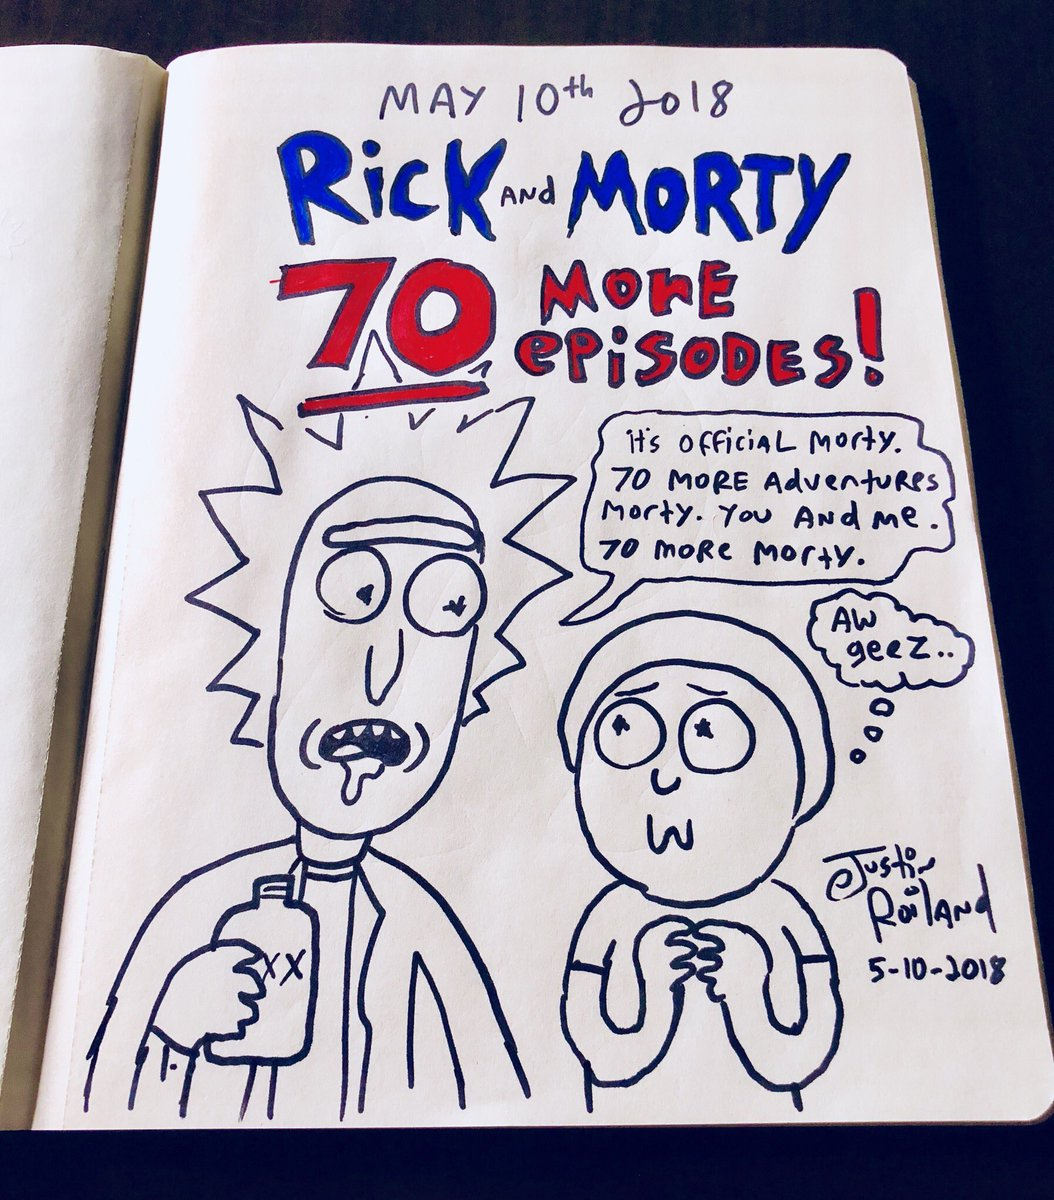 Rick and Morty renewed for 70 more episodes | Television & radio